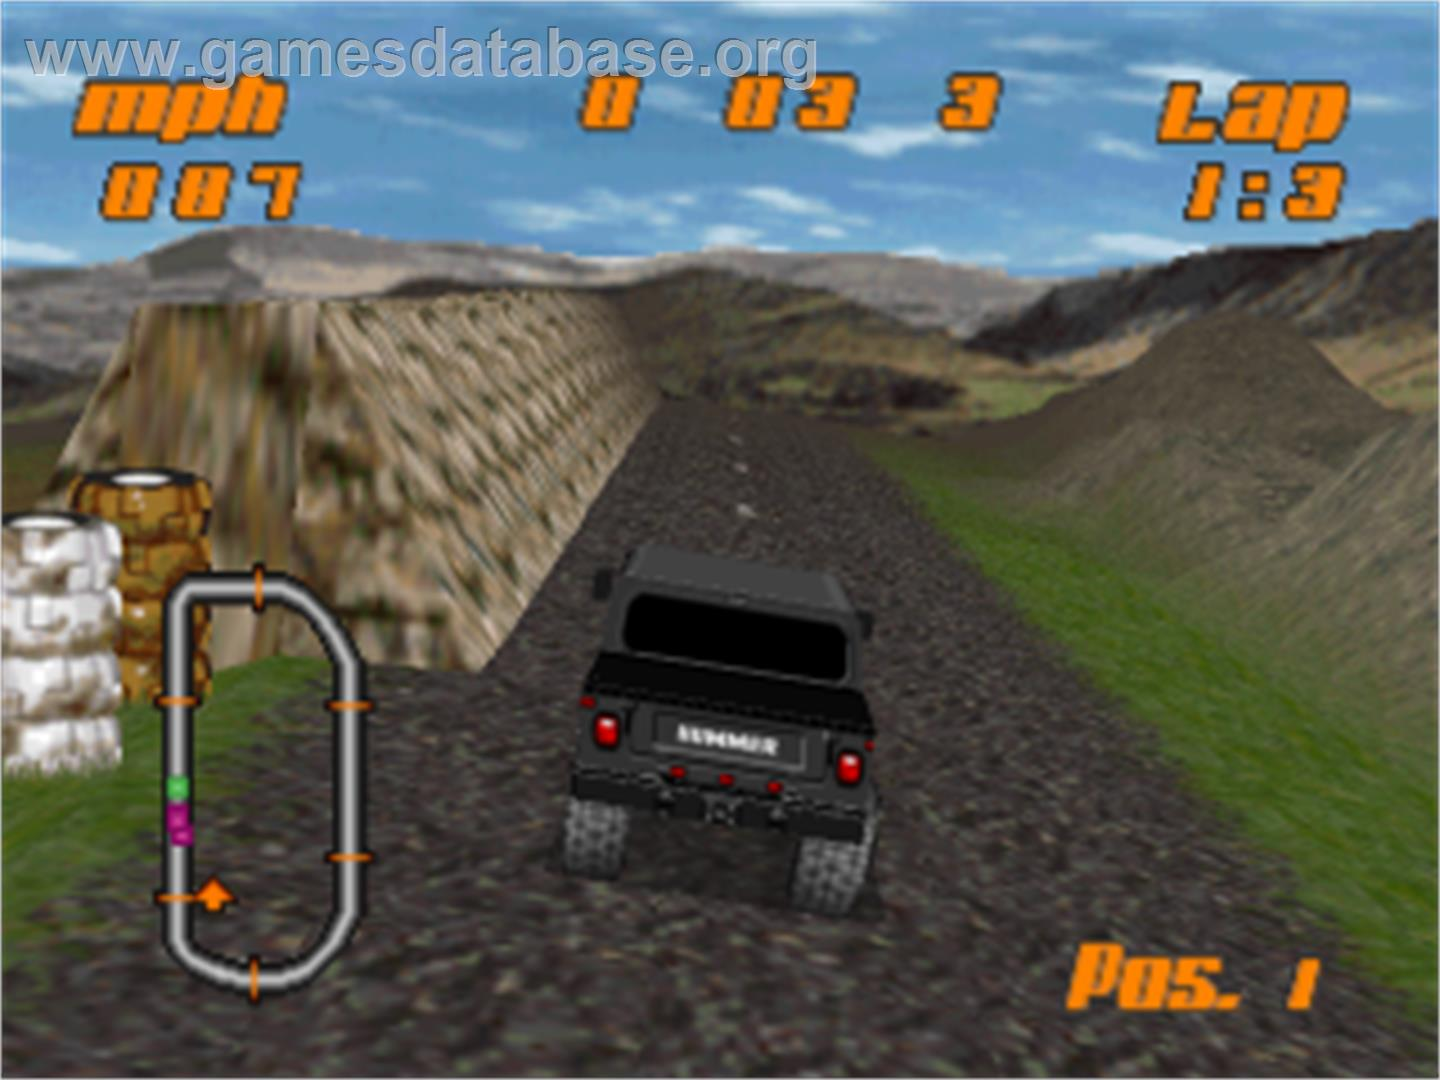 test drive off road sony playstation games database